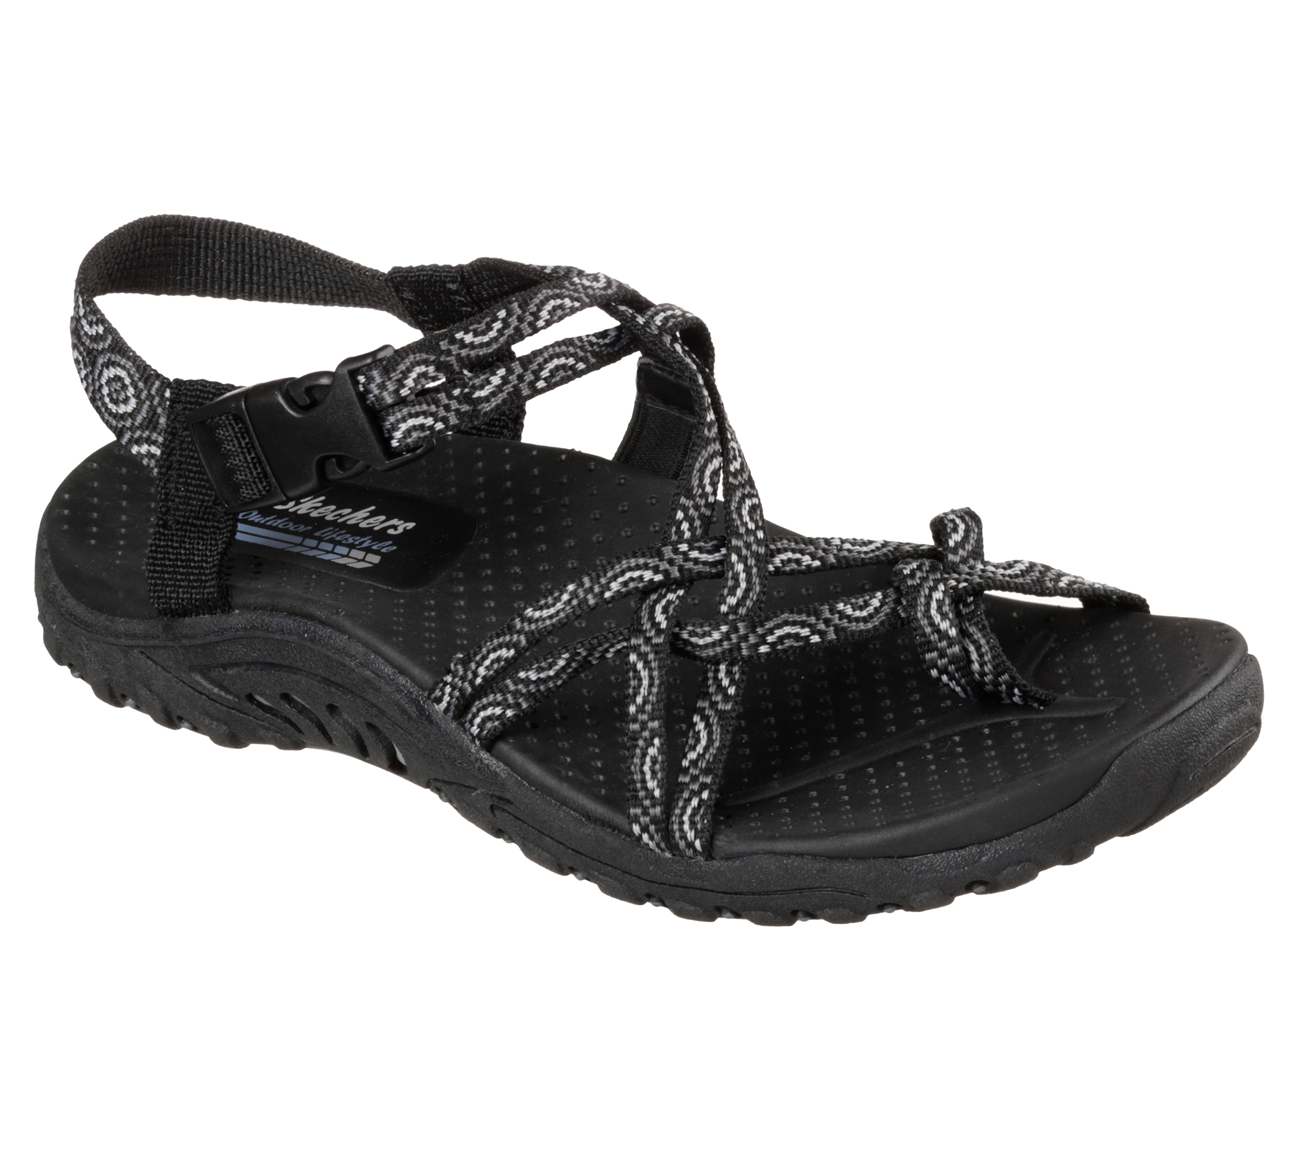 Skechers 40881BLK Women's REGGAE HAPPY RAINBOW Sandal Shoes US size 7 by Skechers